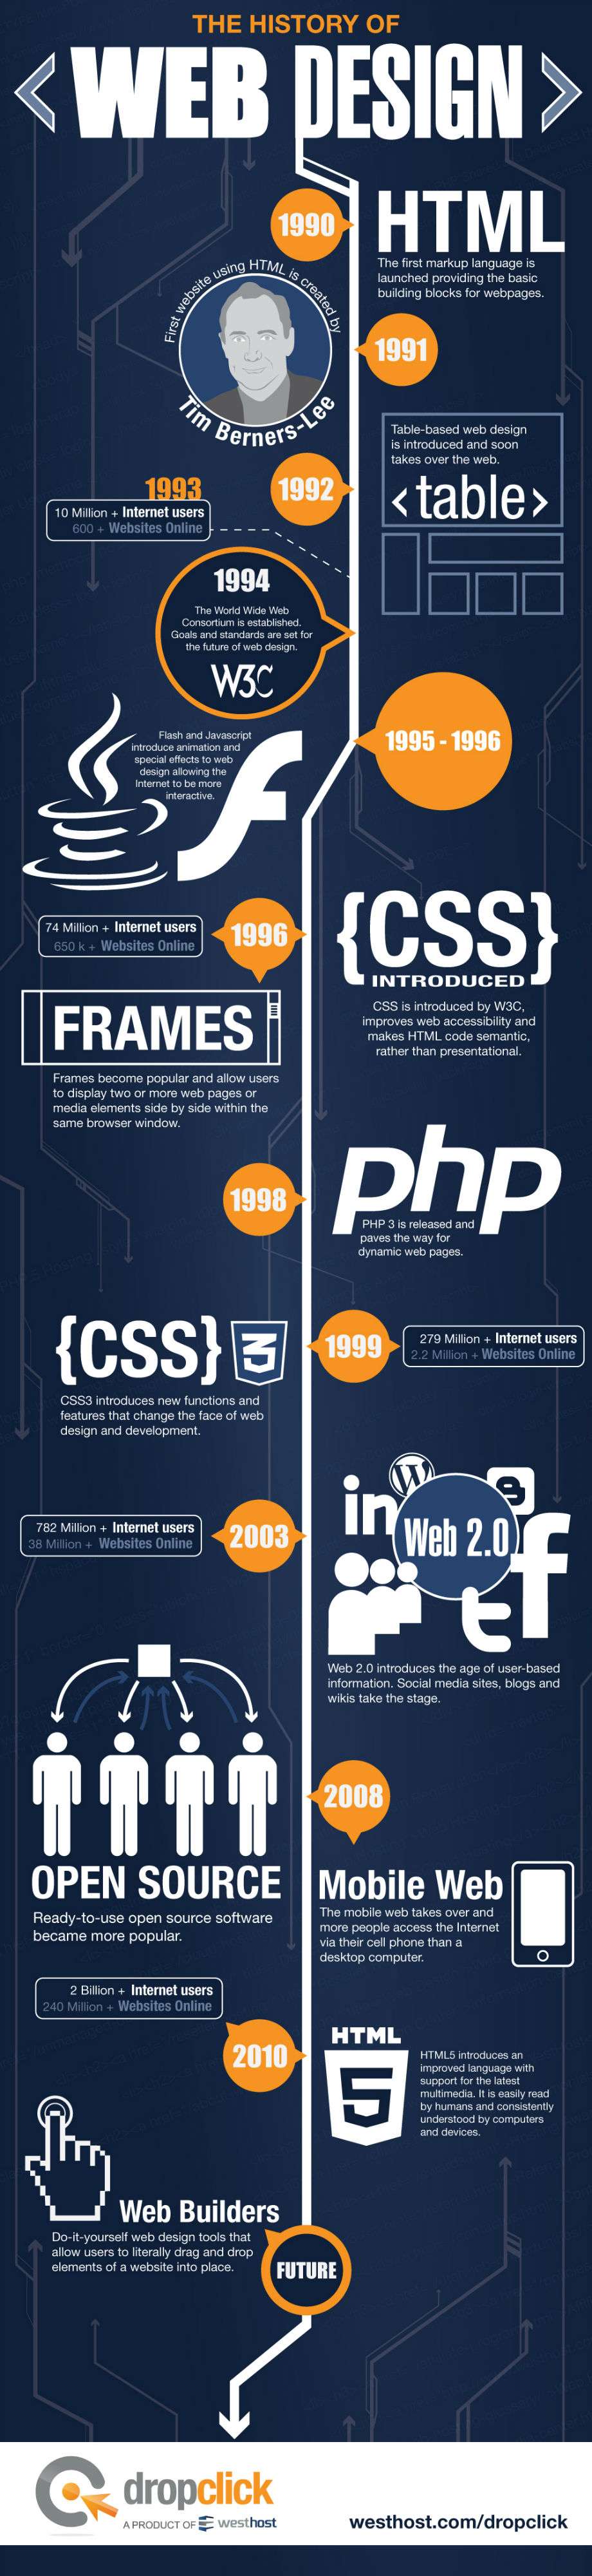 History-of-web-design